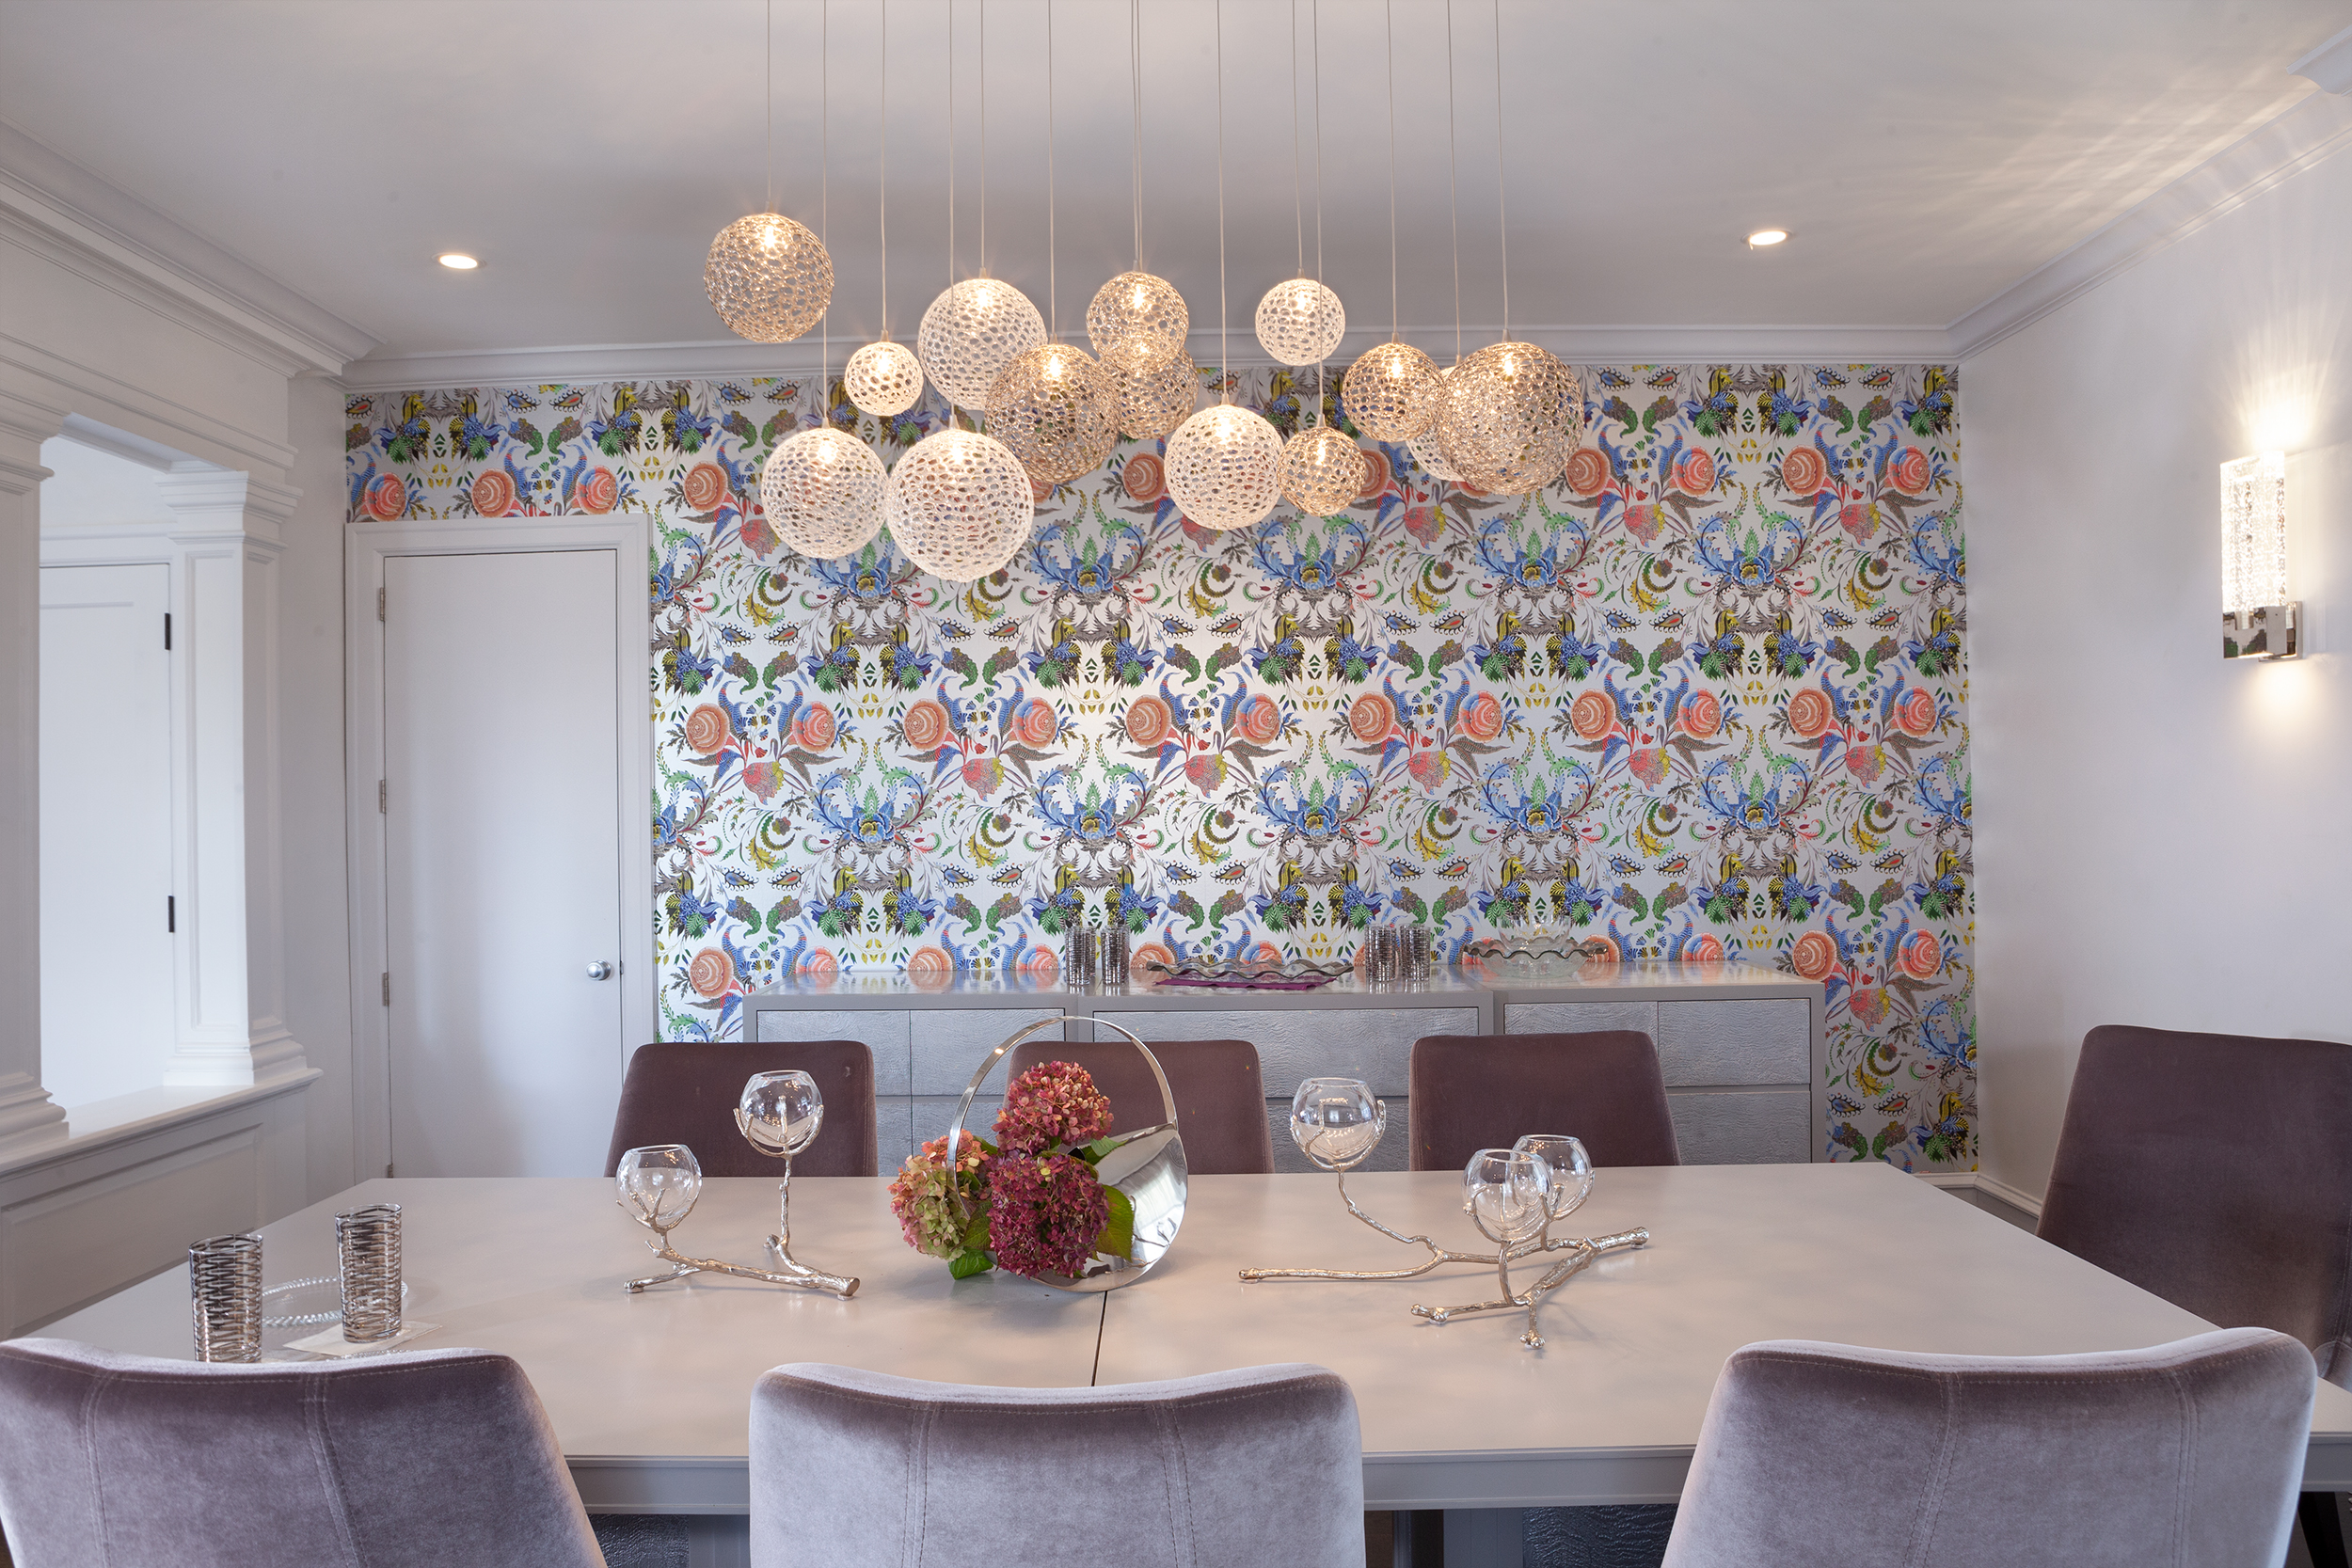 Featured wallpaper by Christian Lacroix and featured lighting by Shakuff